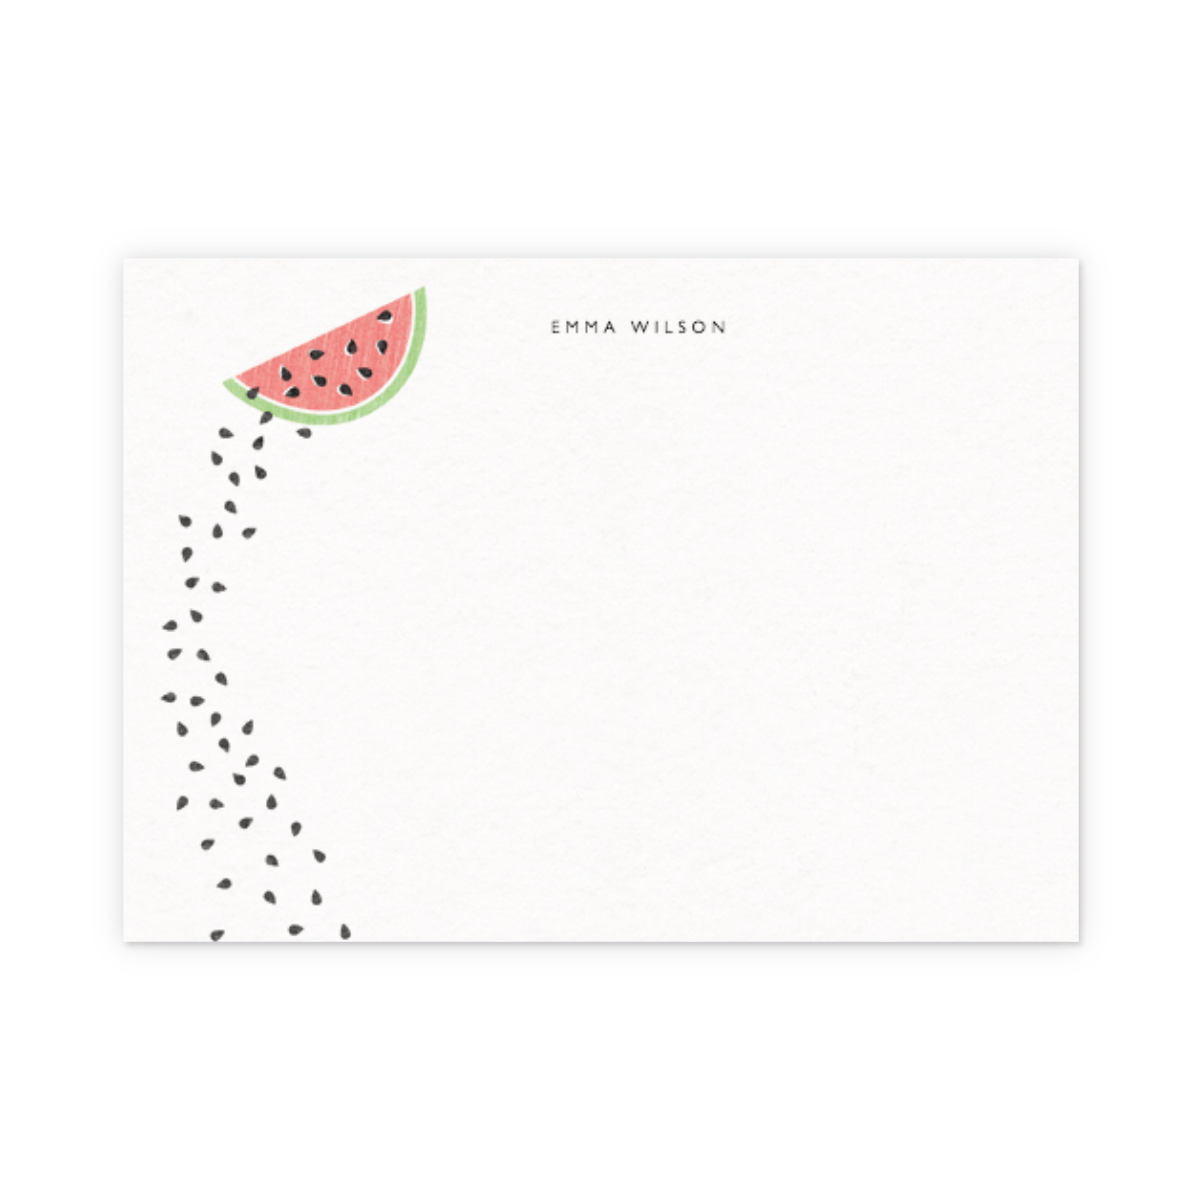 Https%3a%2f%2fwww.papier.com%2fproduct image%2f1688%2f10%2fwatermelon 486 front 1534885759.png?ixlib=rb 1.1